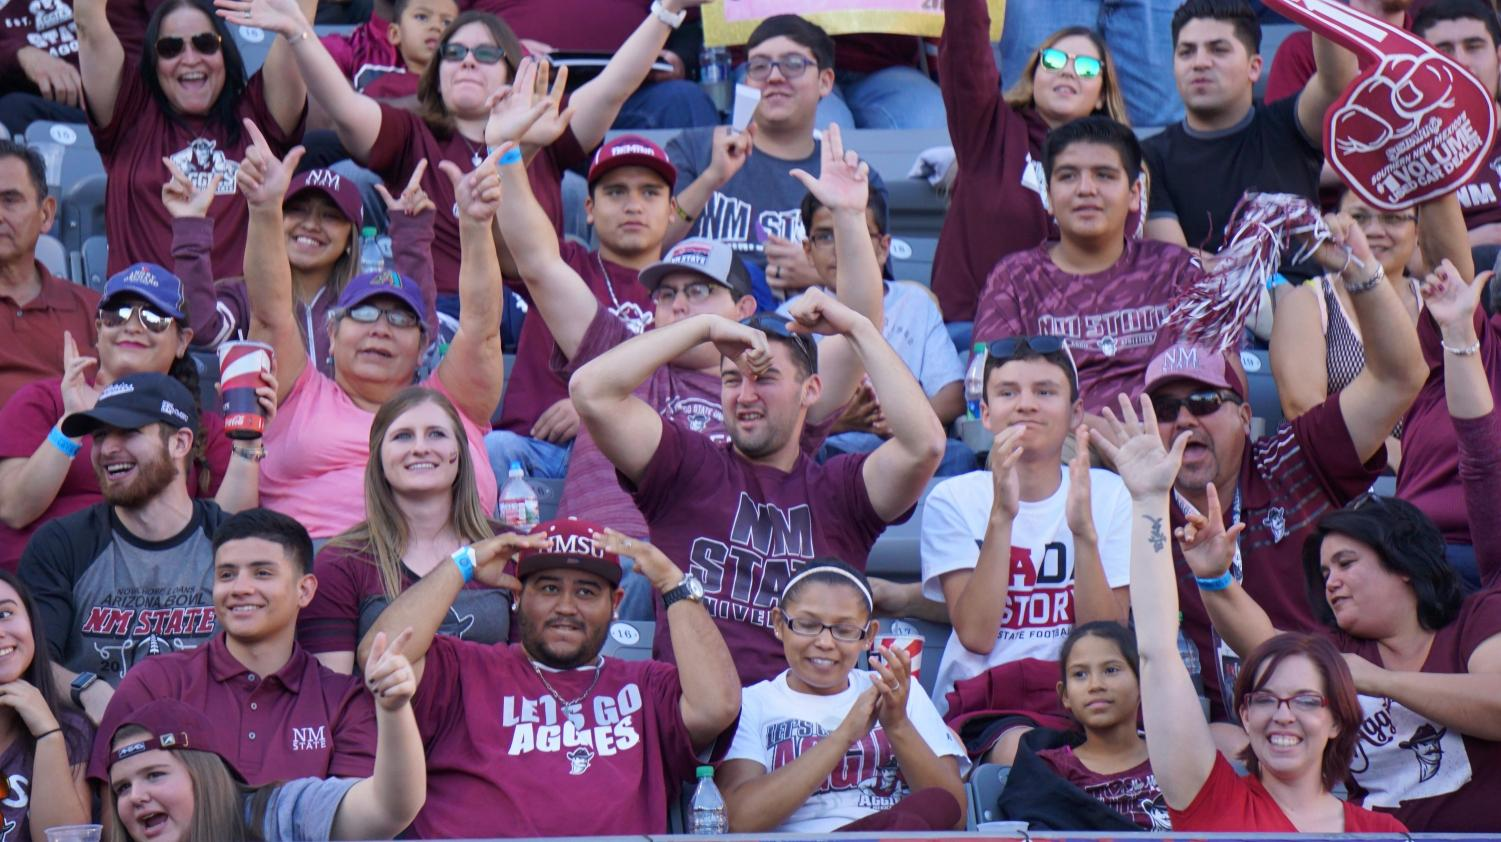 The NM State crowd will return Saturday during the football season opener to be broadcasted on ESPN 2.